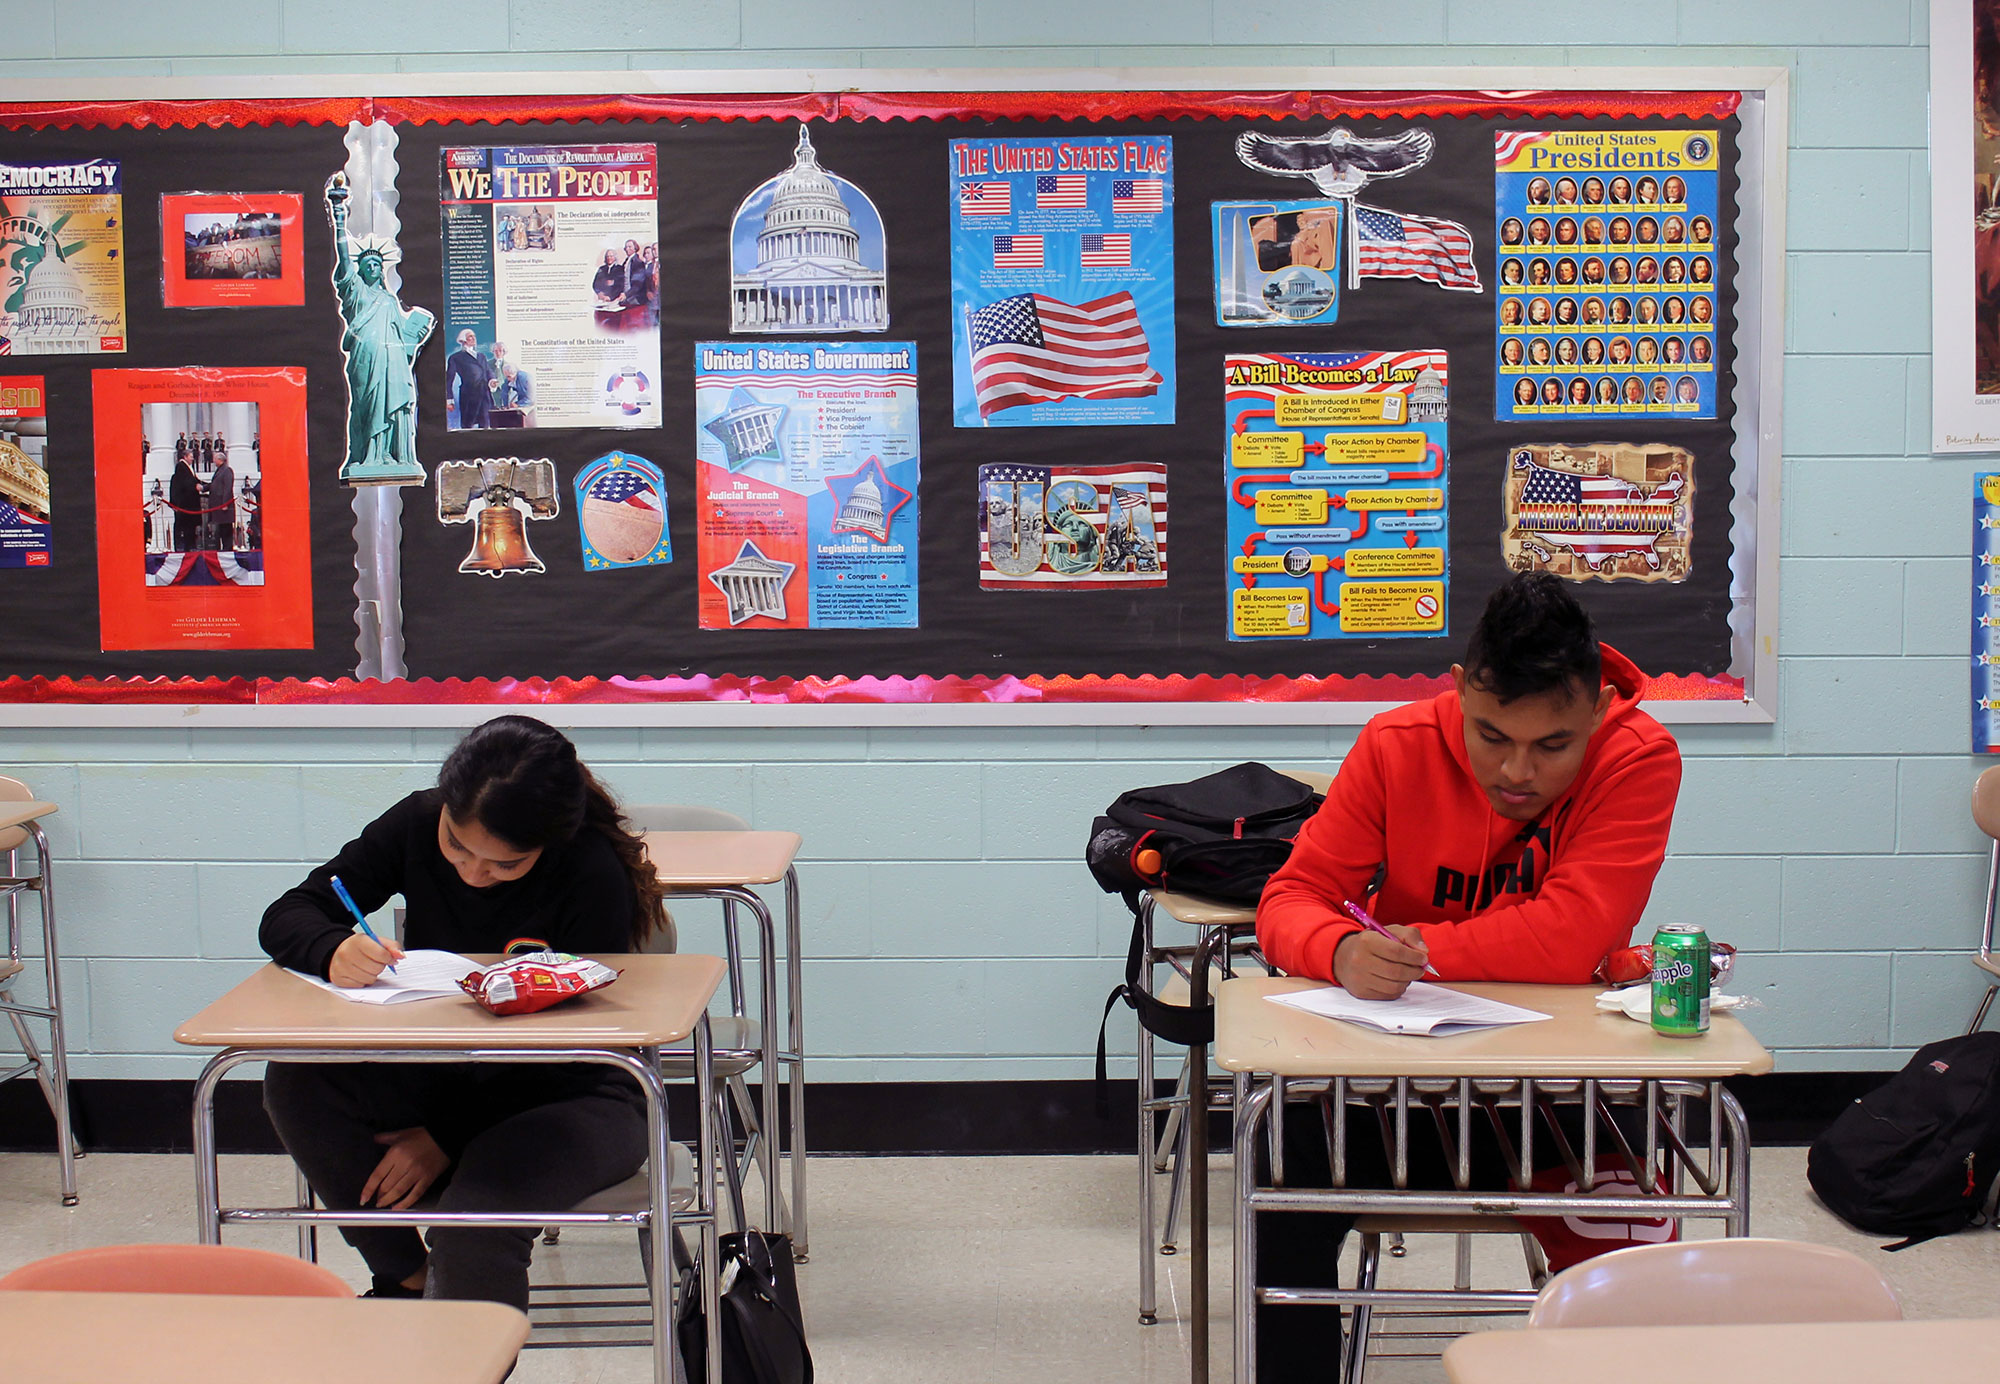 After a hate crime, a town welcomes immigrant students into